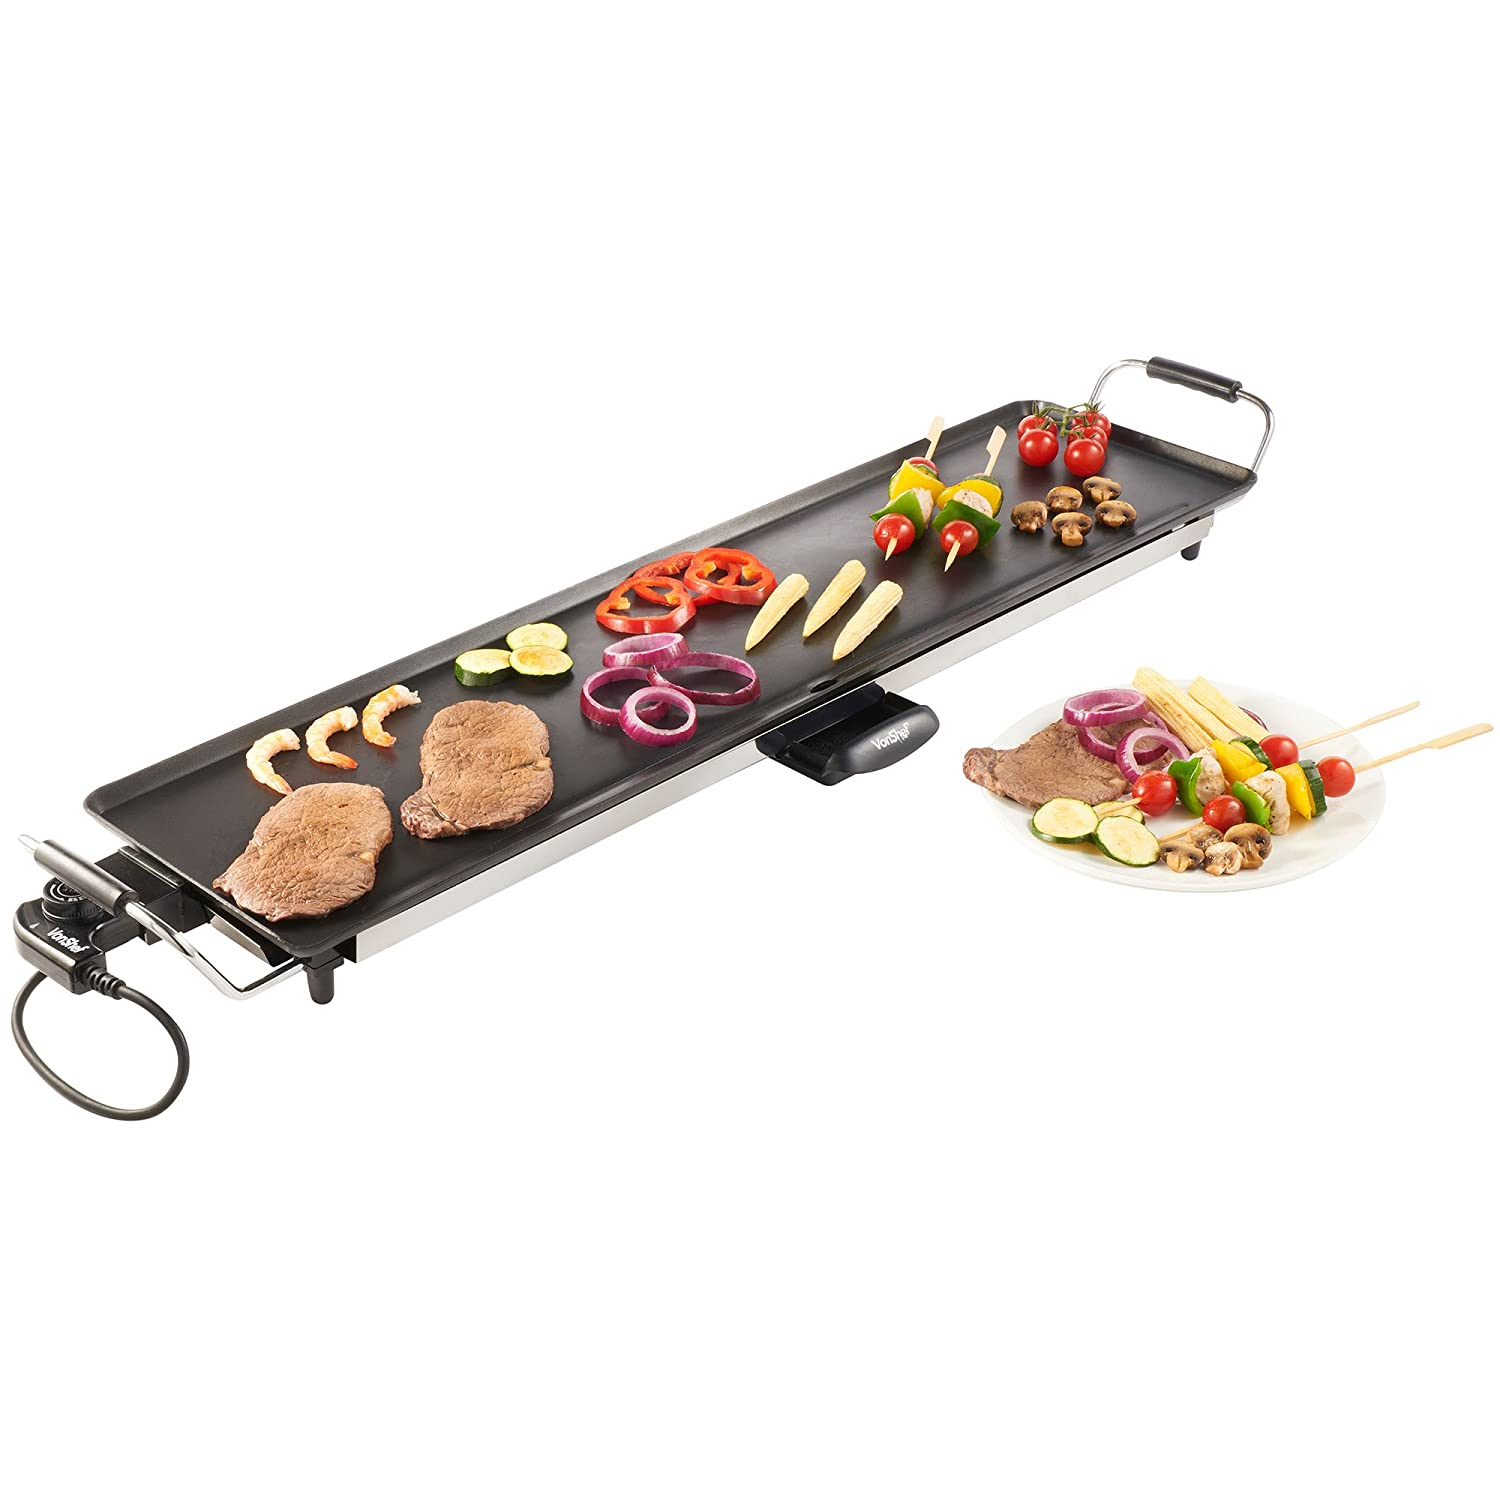 VonShef Electric XXL Teppanyaki Style Barbecue Table Grill Griddle ...